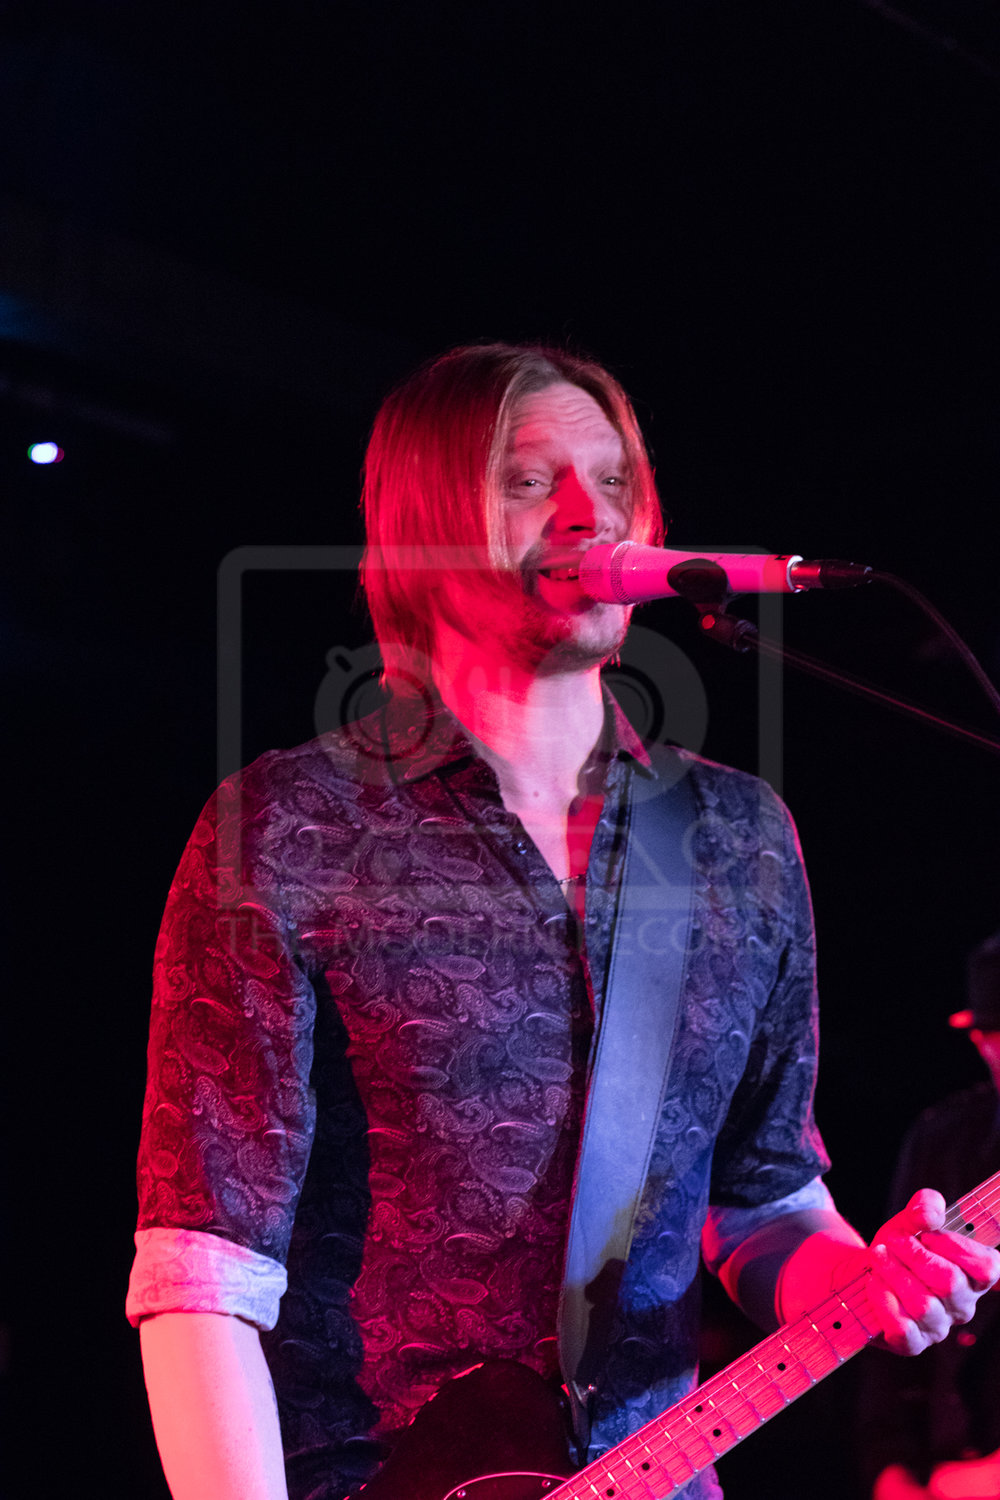 5 - von hertzen brothers - Newcastle University SU, Newcastle - 08-12-18 Picture by Will Gorman Photo.JPG